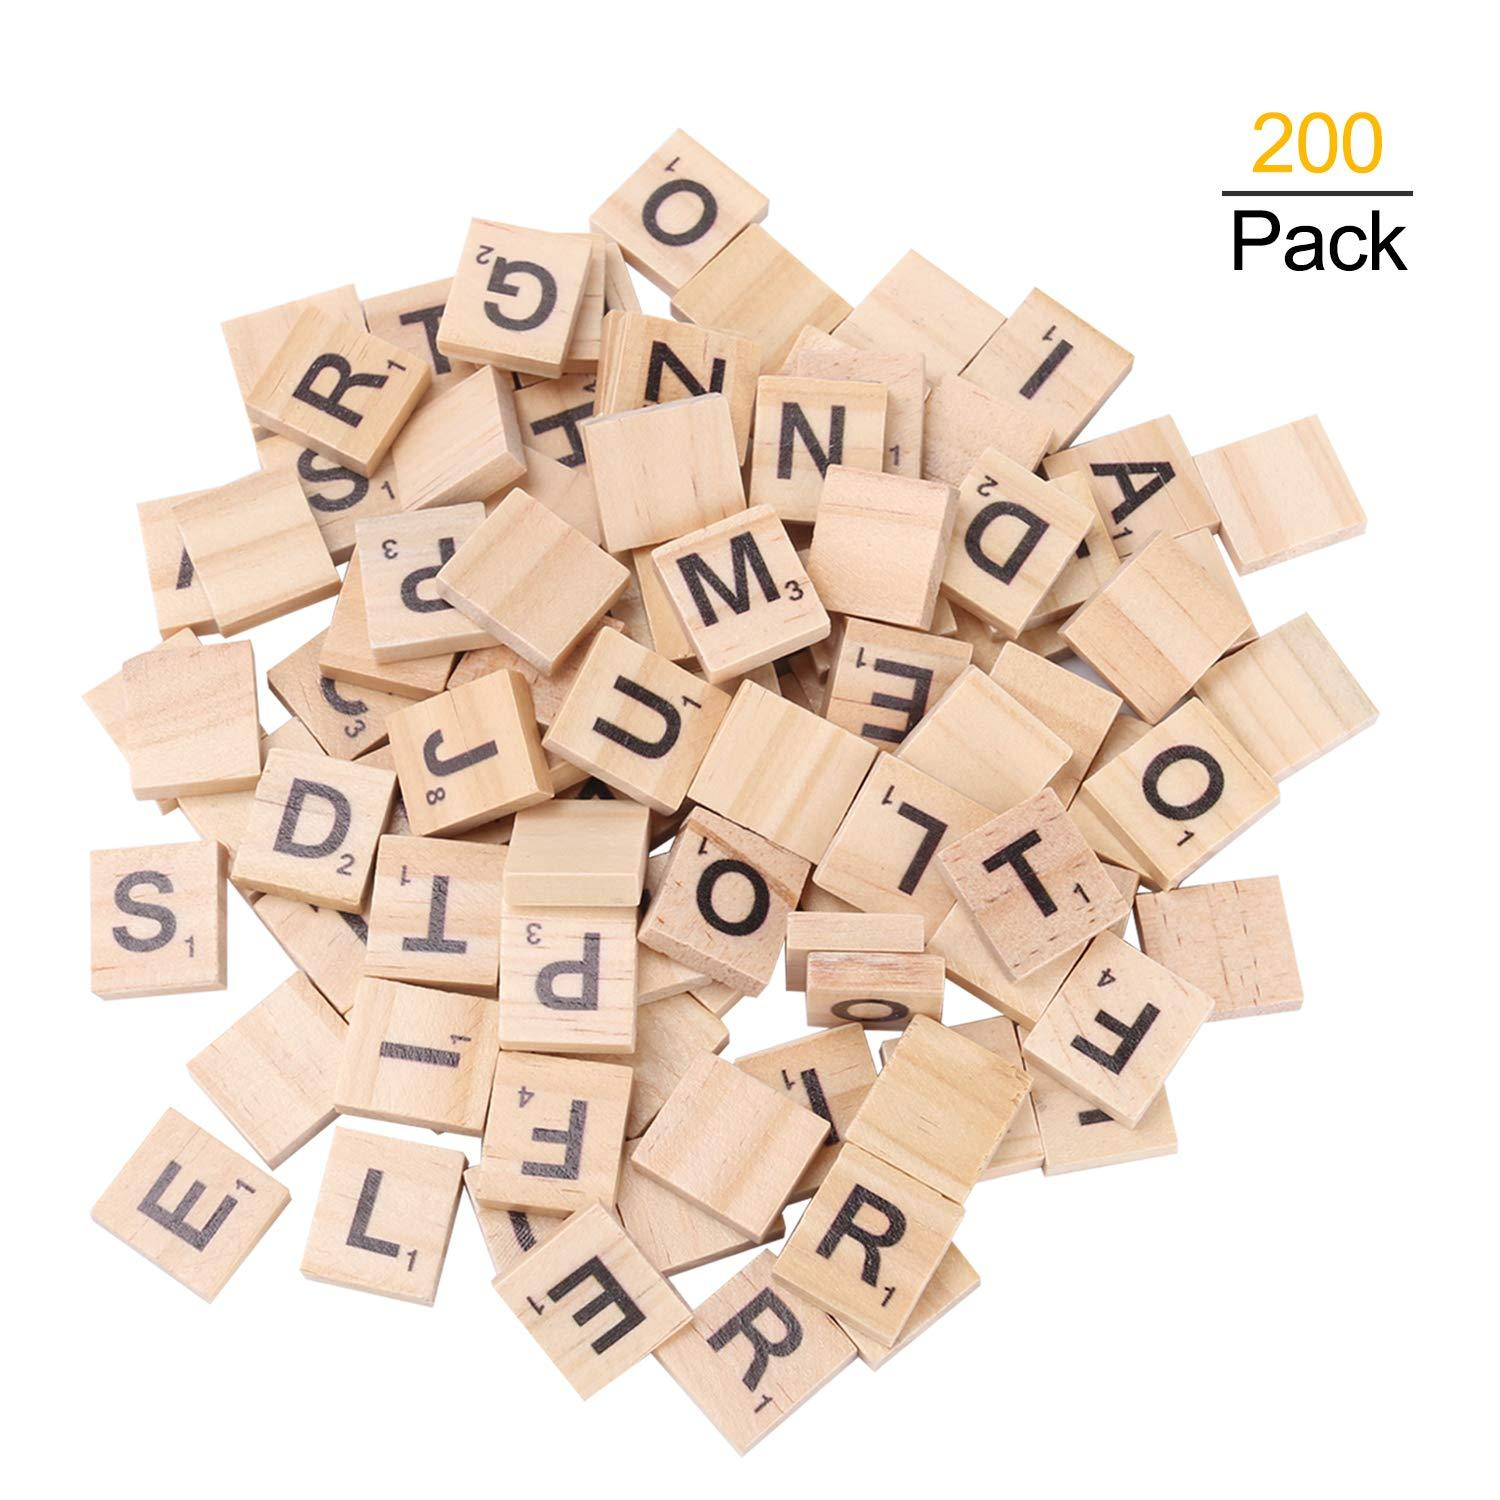 scrabble tiles for crafts wooden letters scrabble letters education games and diy wood tile game wall decor all ages walmart com